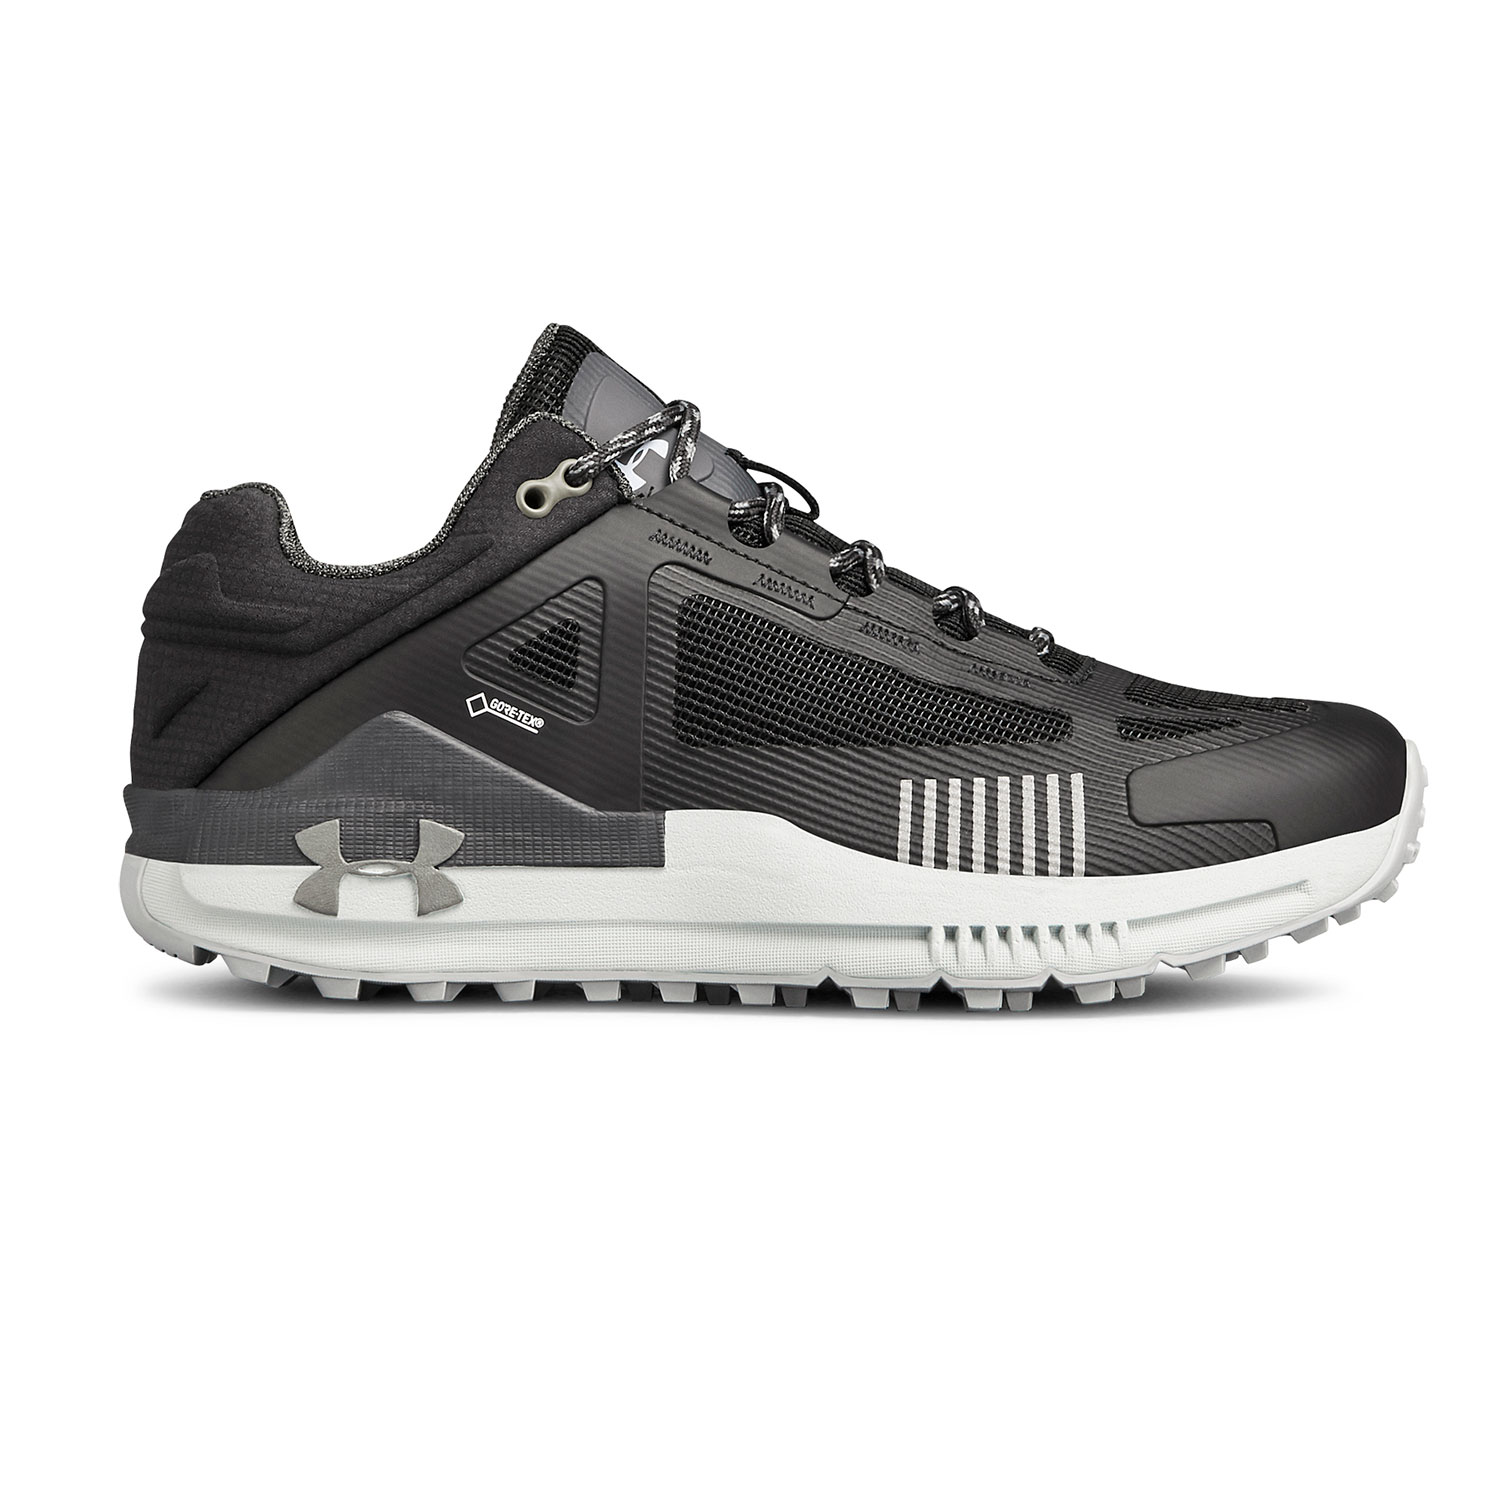 Verge 2.0 Low GORE-TEX Hiking Shoes